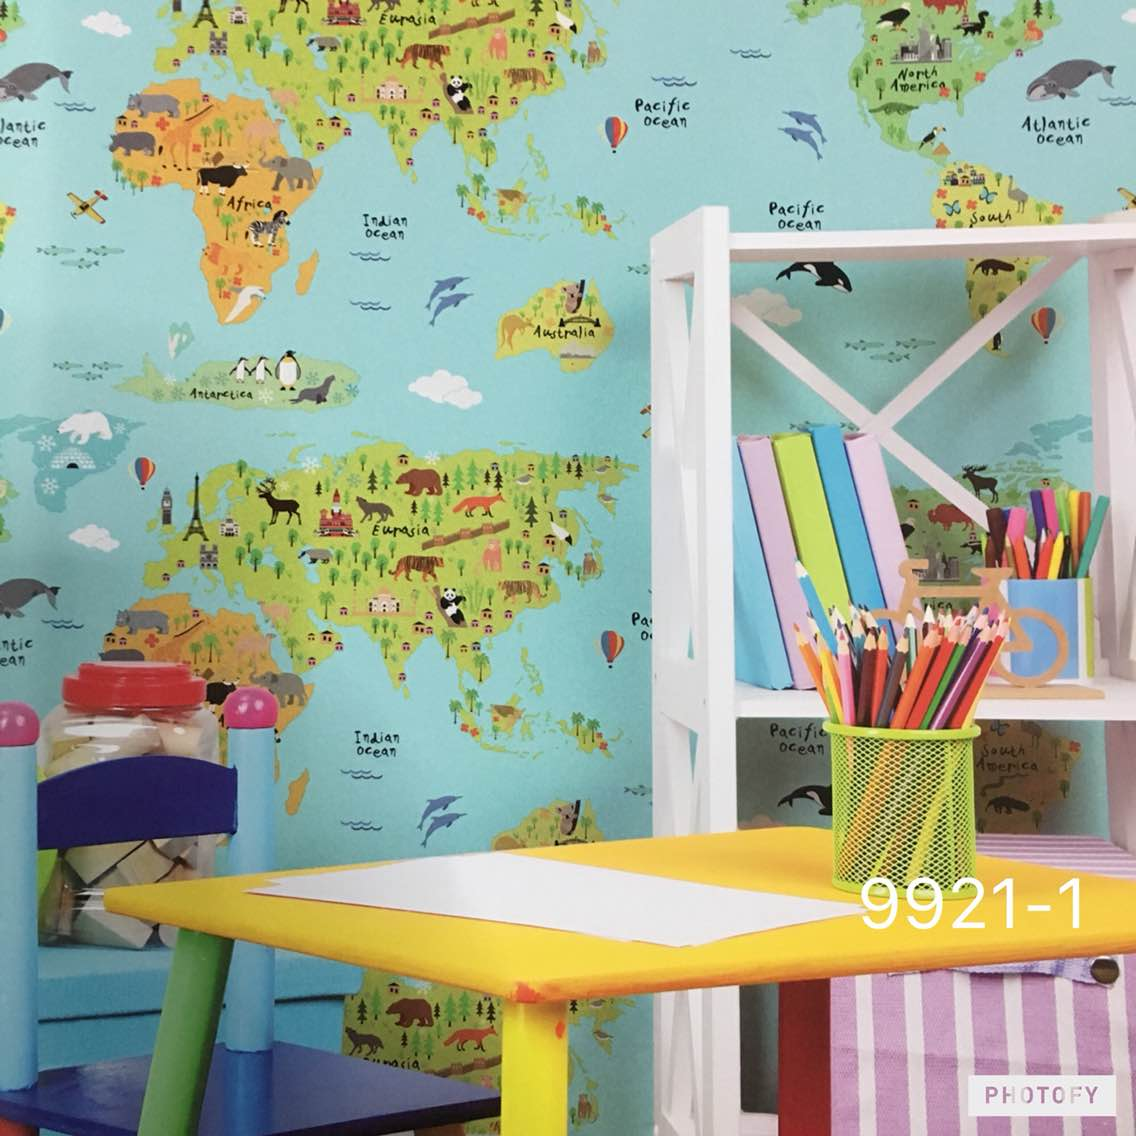 Best Imported Wallpaper supplier in Delhi.   A World Map wallpaper now availble at very low cost.  Most running Wallpaper Design for Kids Room from the Wonder land koreaon wallpaper series.   Product code is 9921-1.  To buy call us  Wallparadise- World Map Imported wallpaper Suplier in Rajori Garden Delhi.